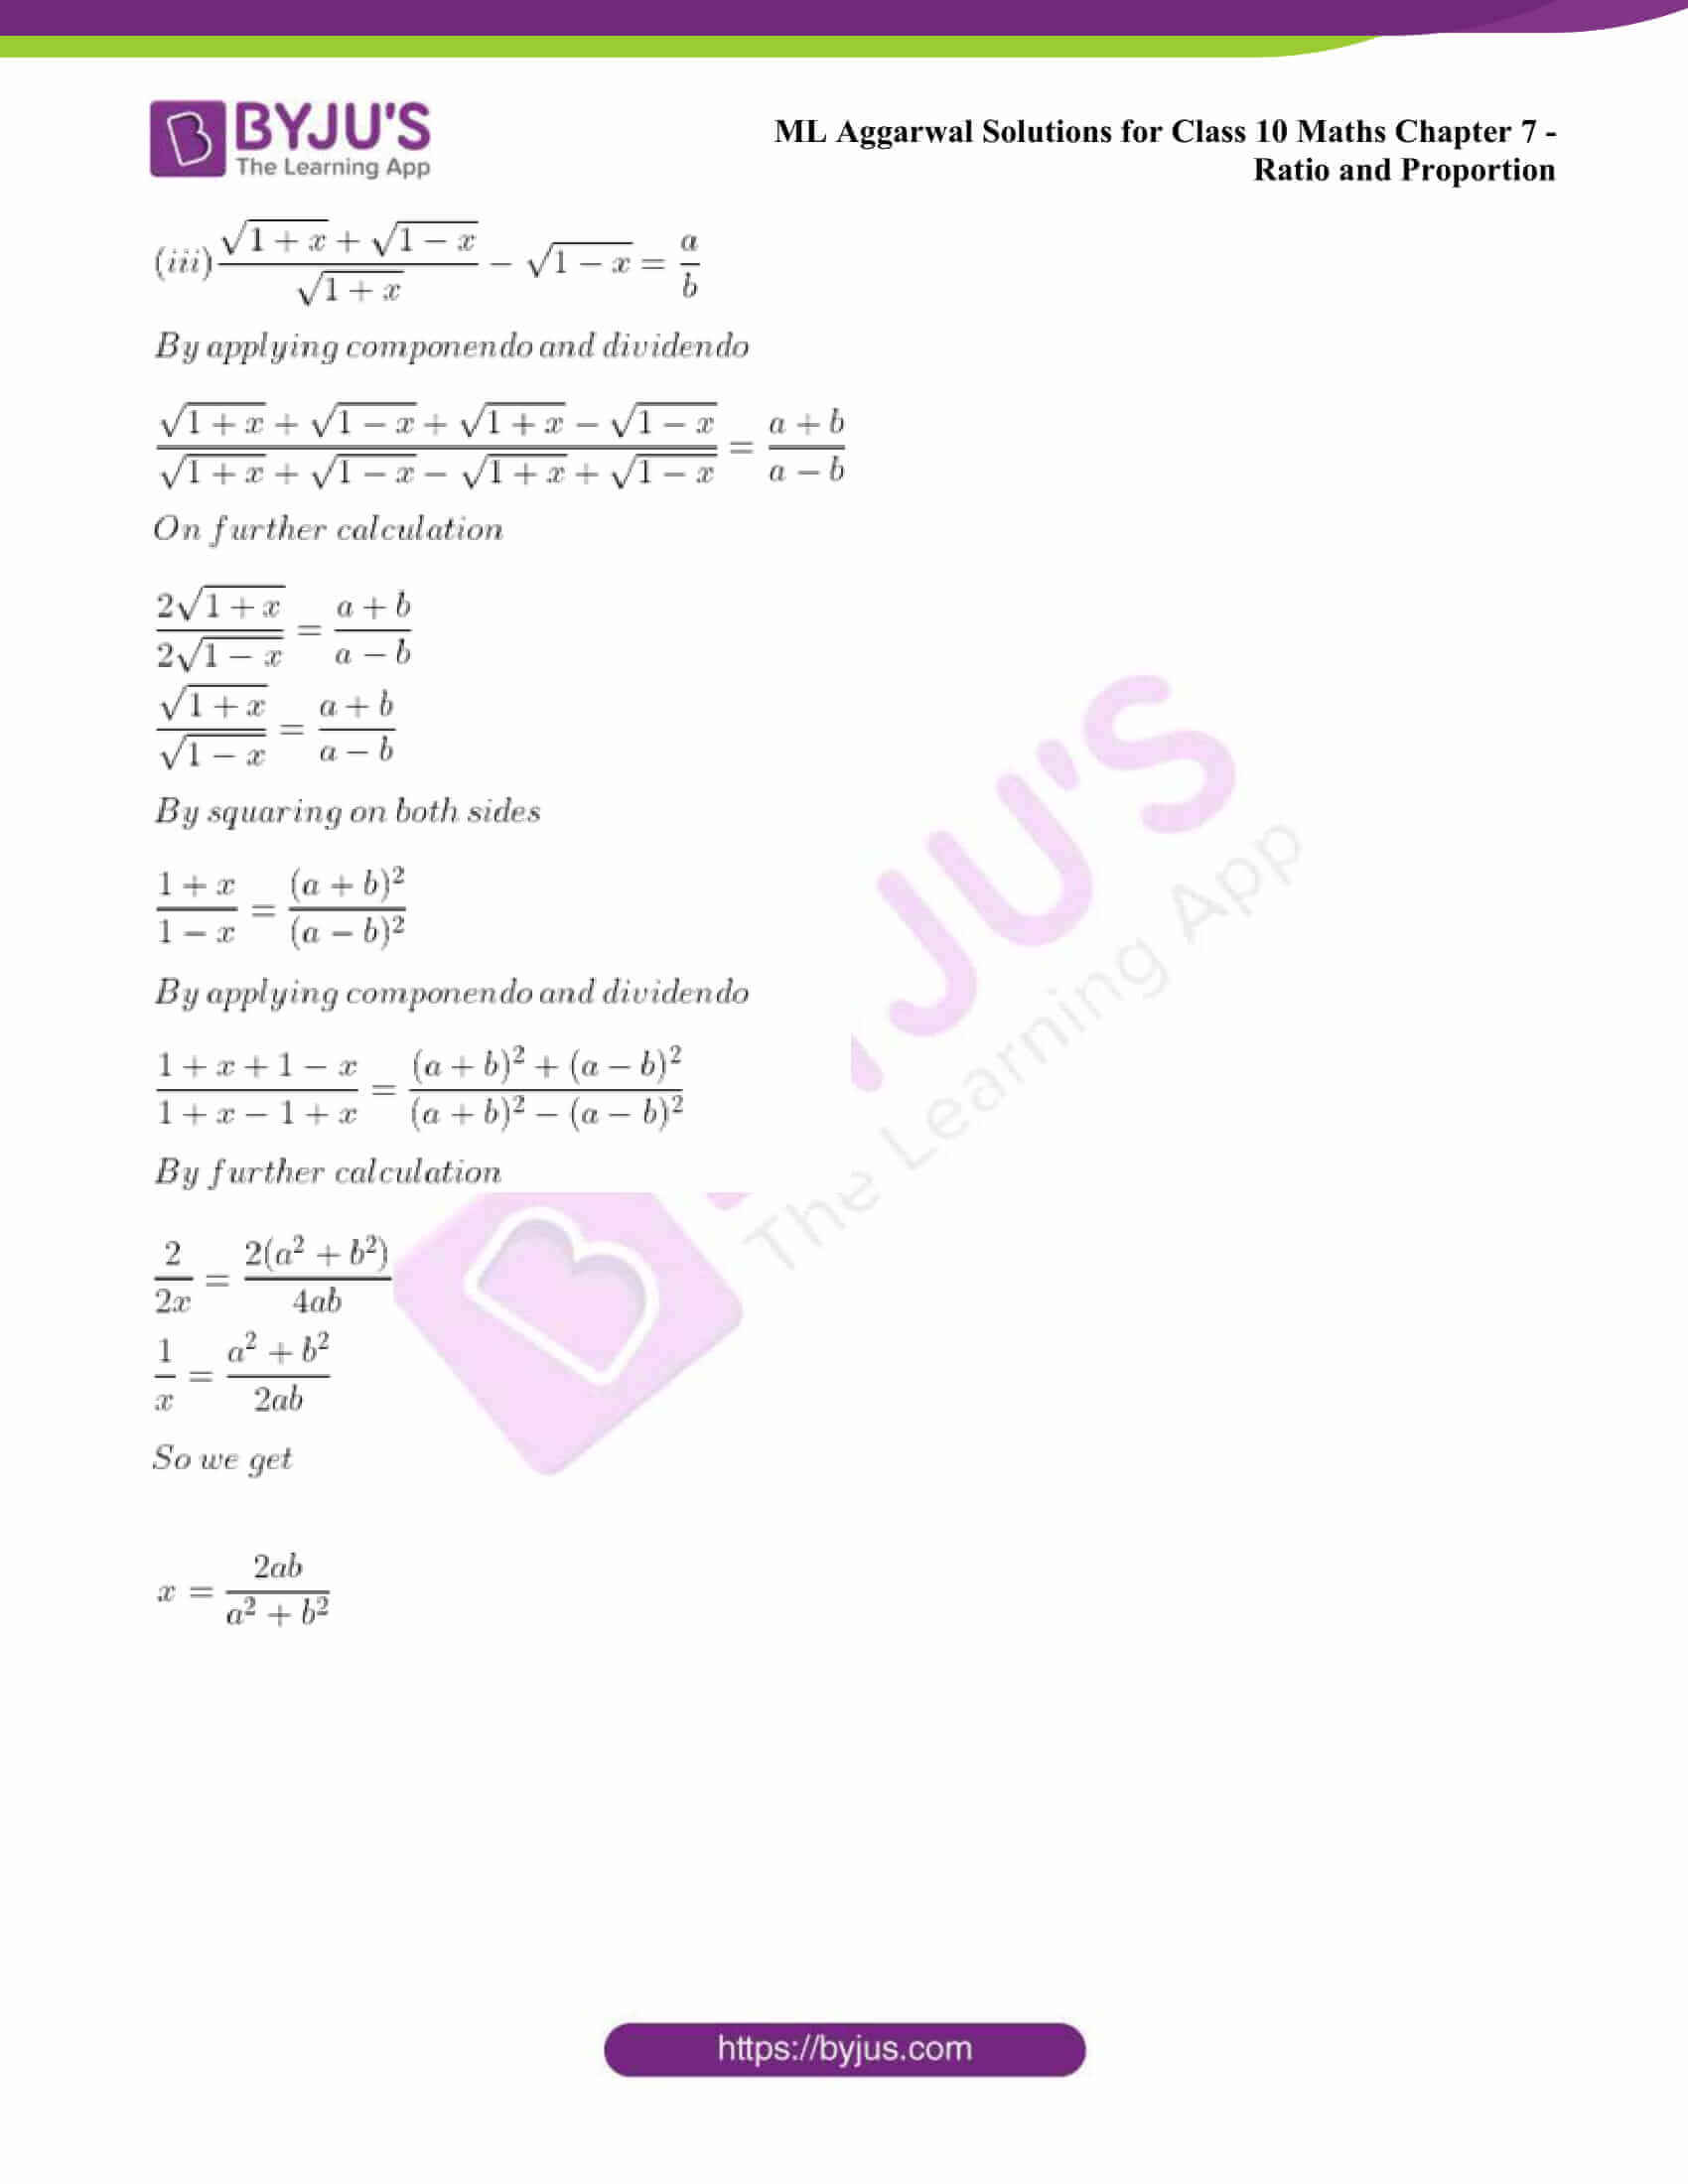 ml aggarwal solutions class 10 maths chapter 7 56